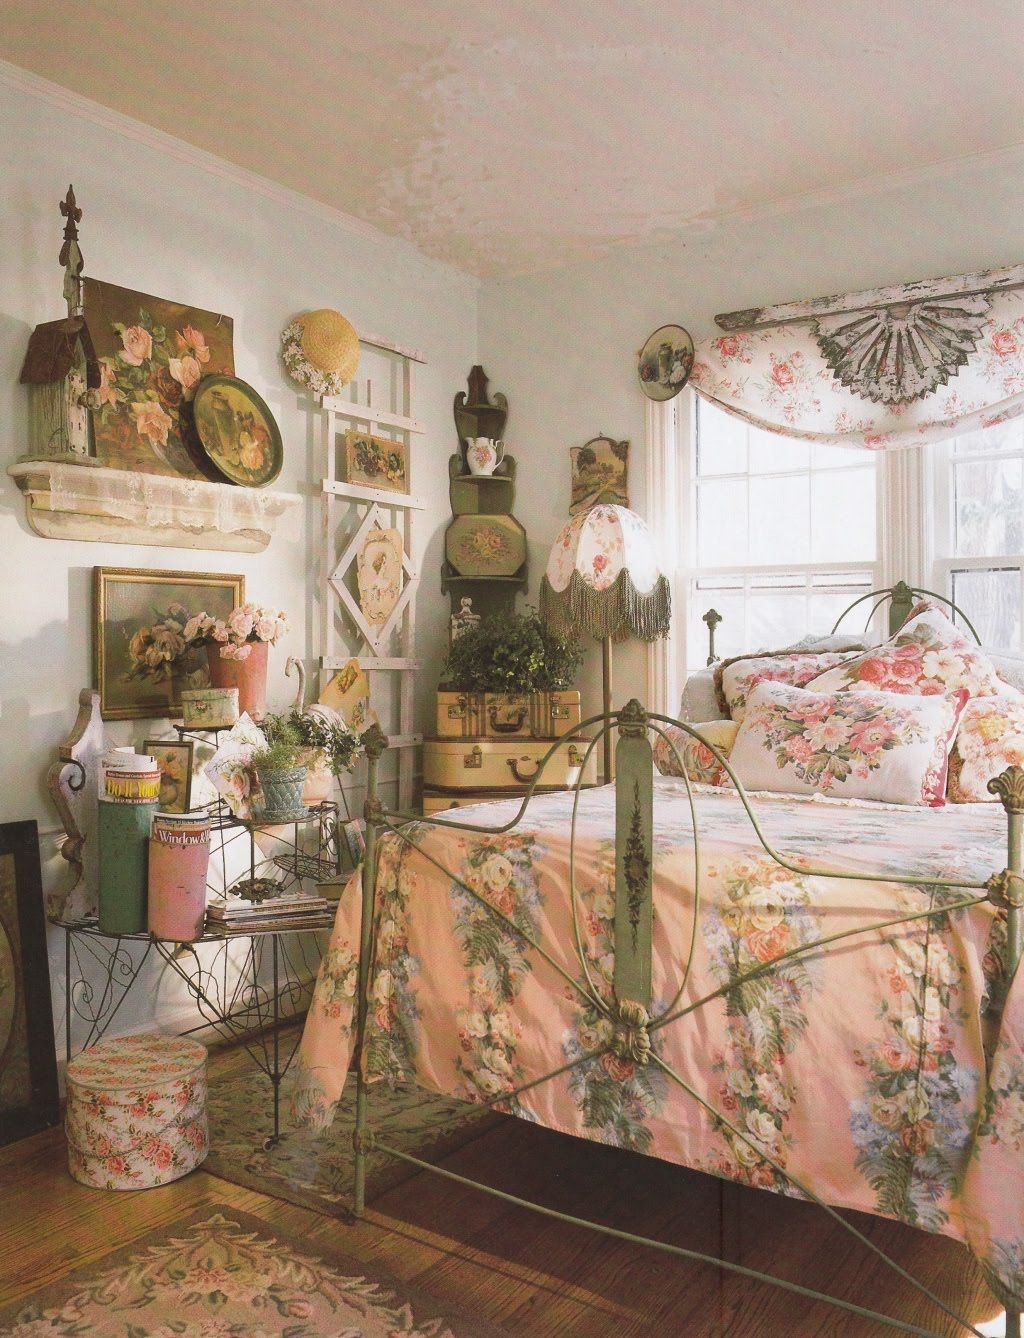 Old Fashioned Bedroom Modern Interior Design With Vintage Furniture And Decor